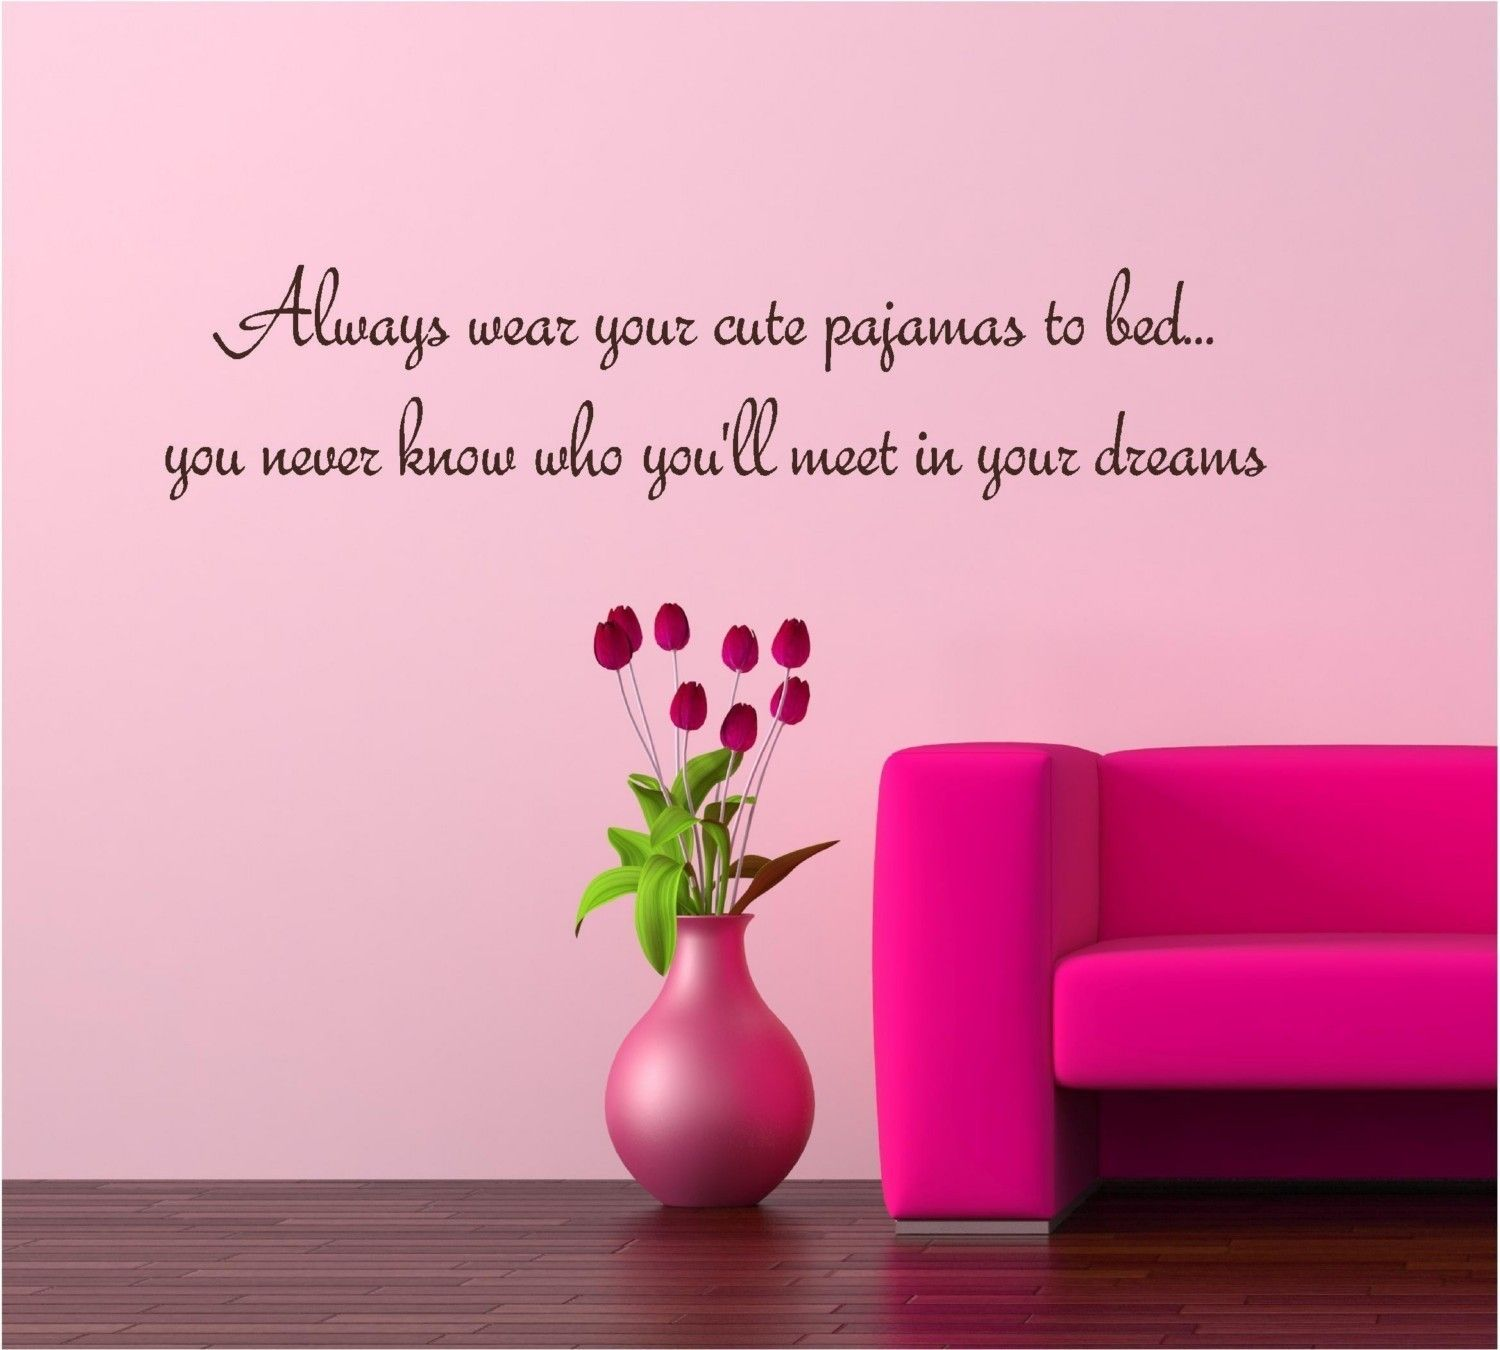 Inspirational Dream Life Quotes HD DP for whatsapp  Cute quotes